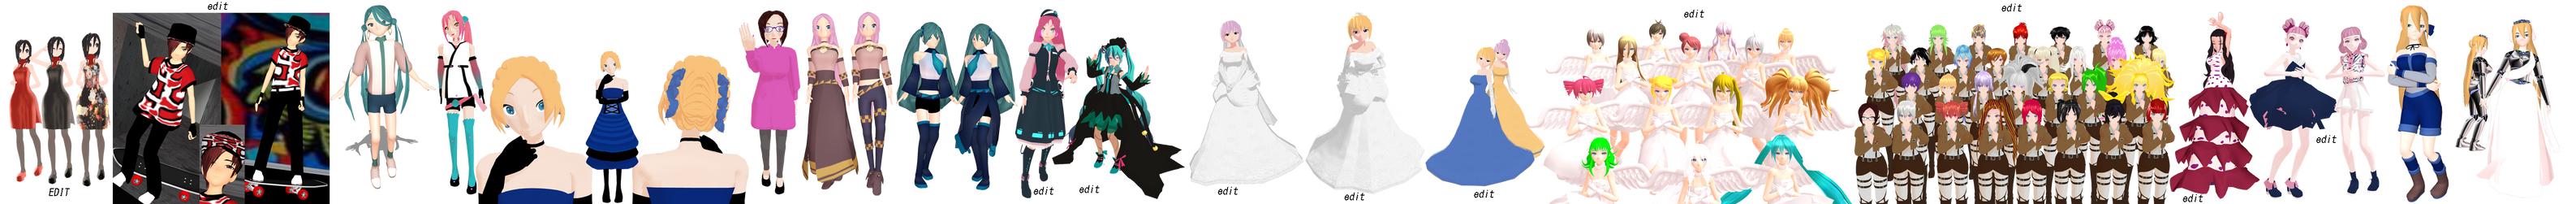 MMD 2015 Review Of Models